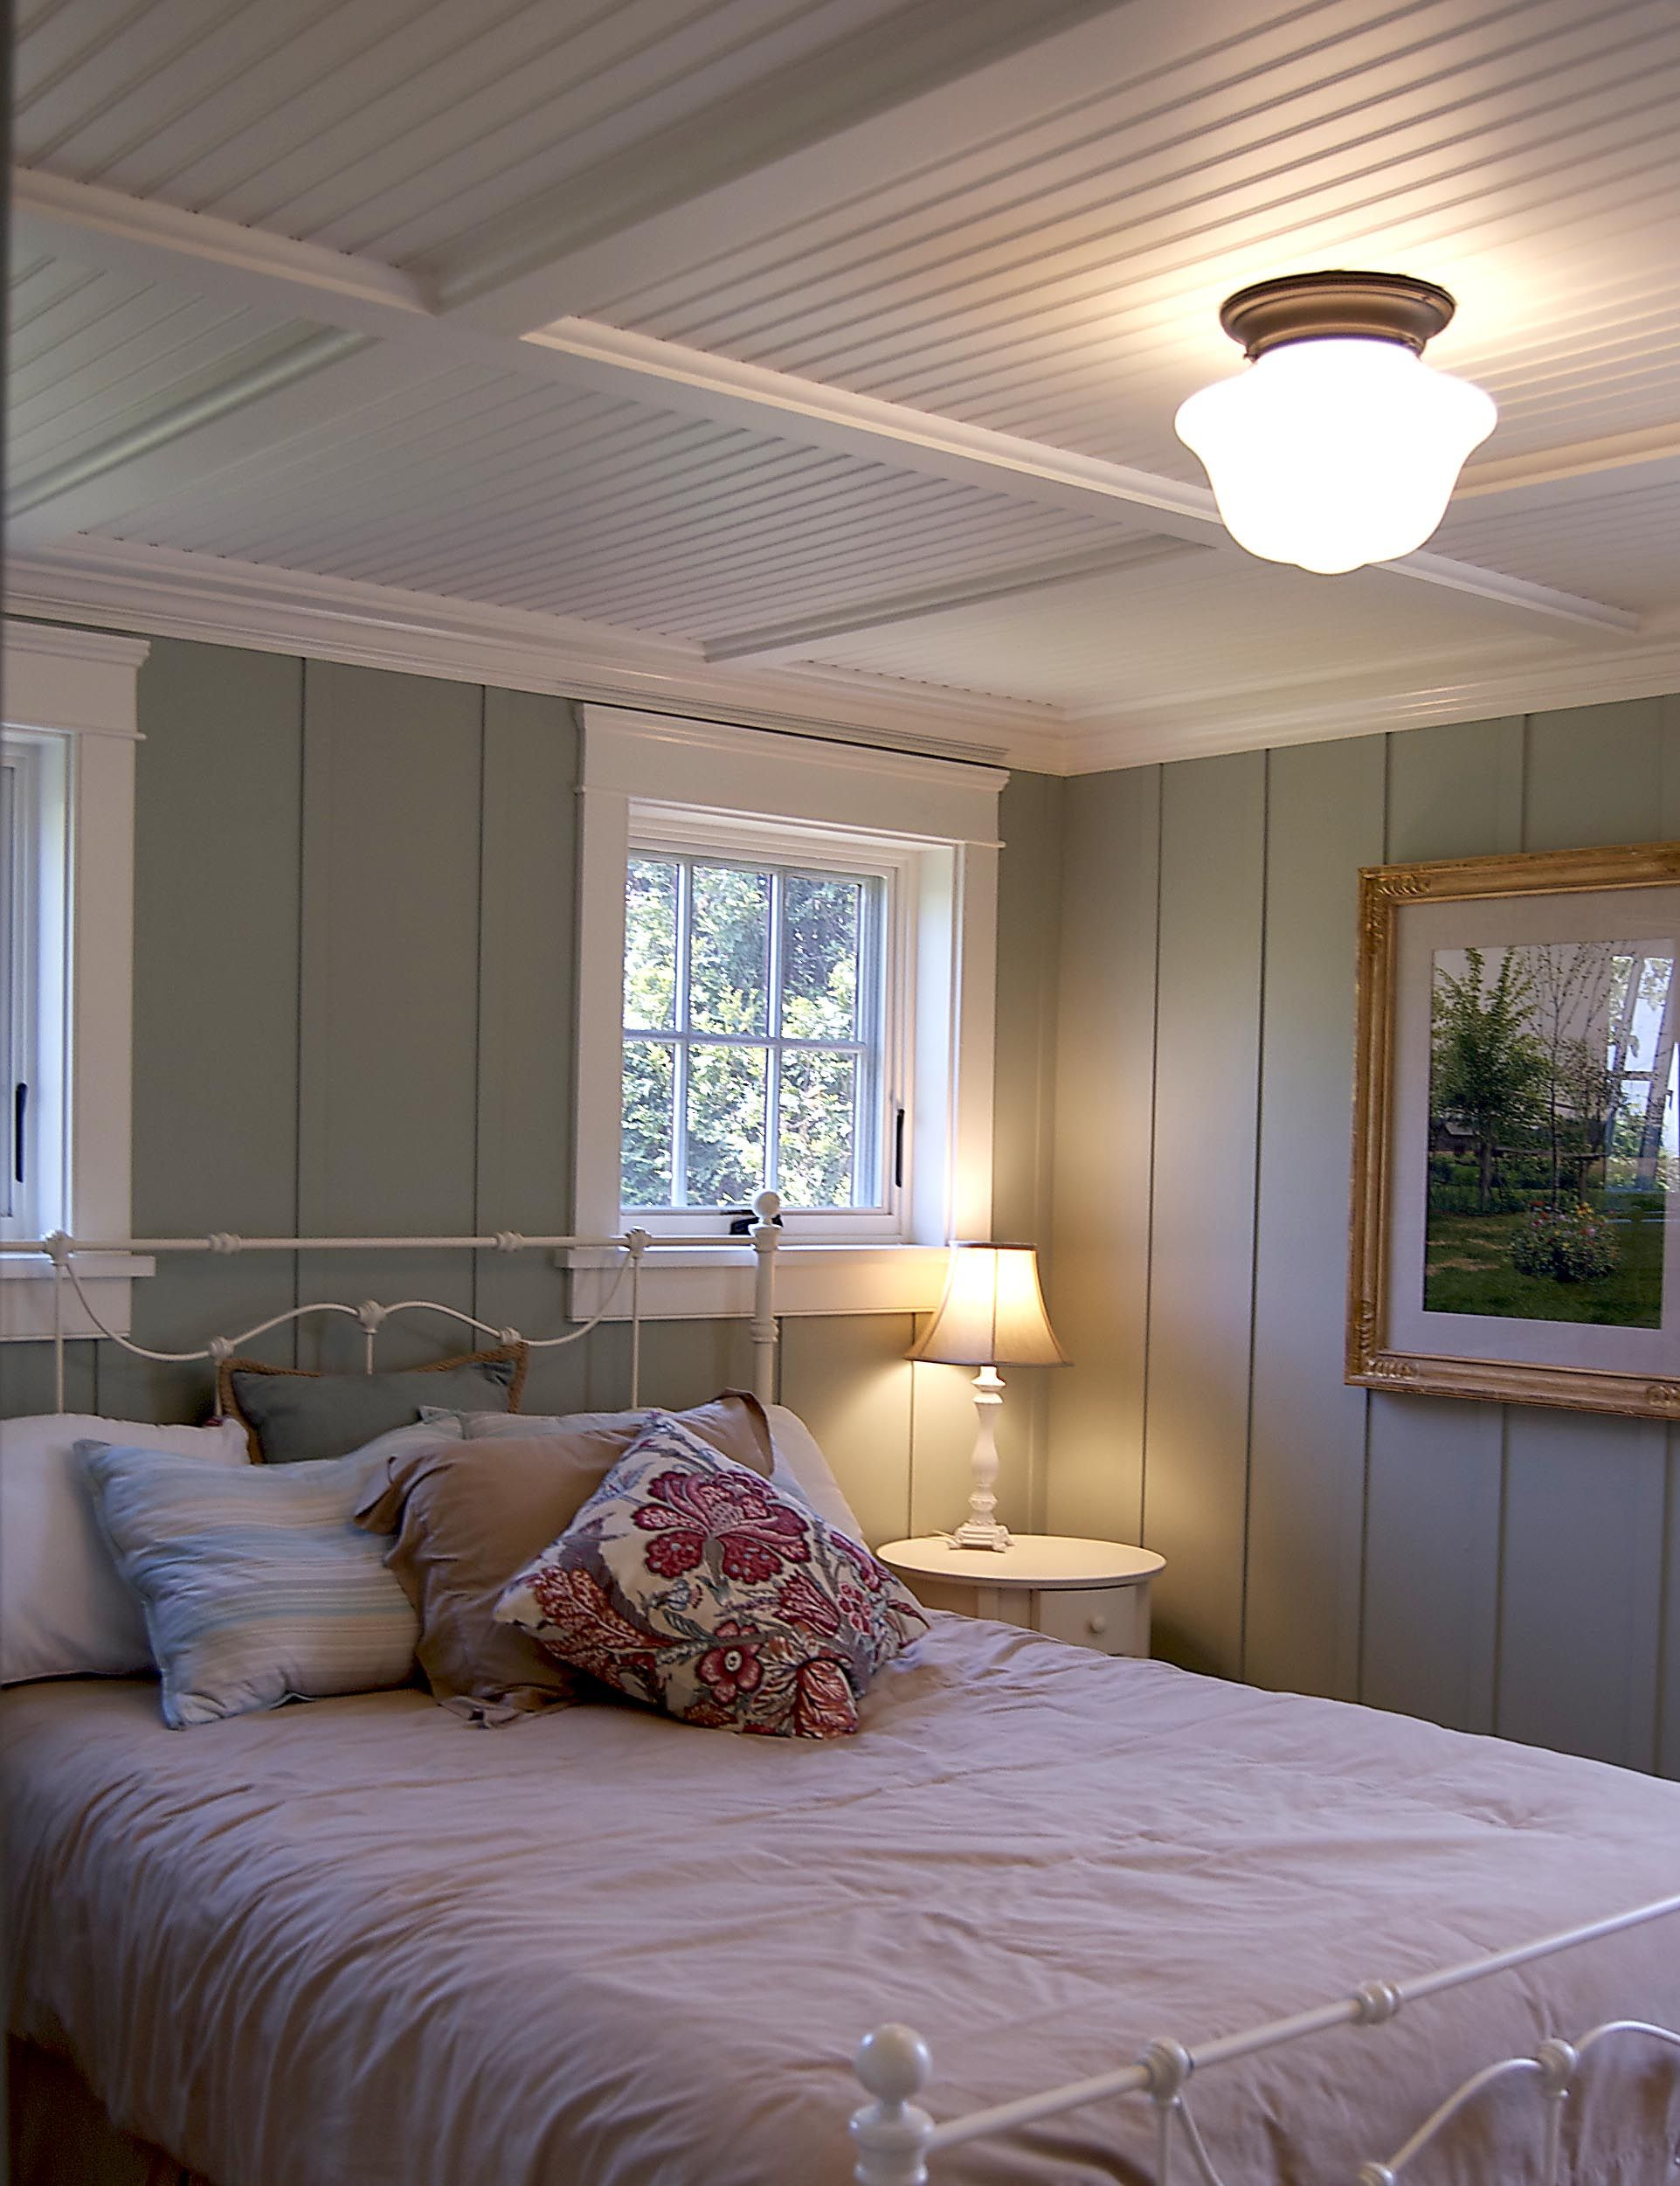 Ideas For Rooms With Wood Paneling: Gulfshoredesign.com Cottage Bedroom With Floor To Ceiling